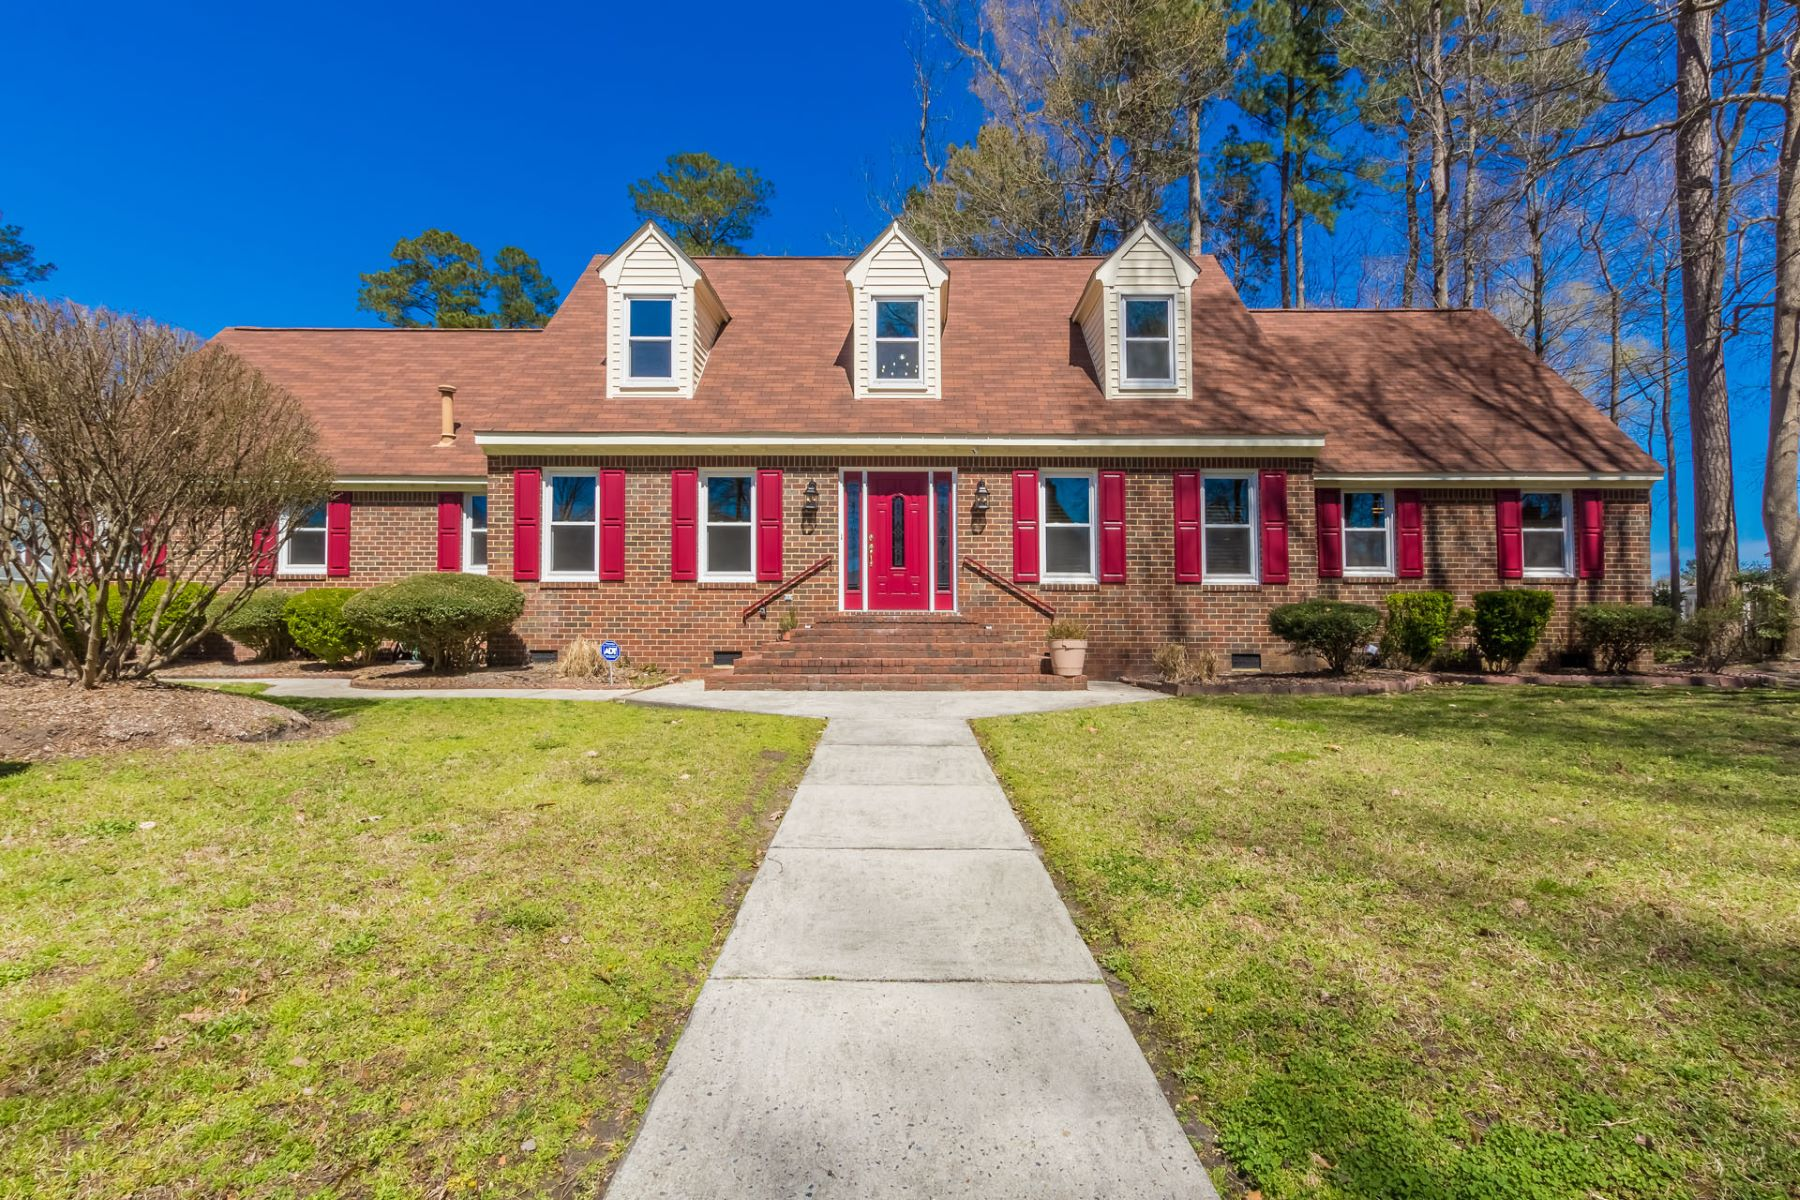 Single Family Home for Sale at Foxgate Quarter 440 Butterfly Drive Chesapeake, Virginia 23322 United States